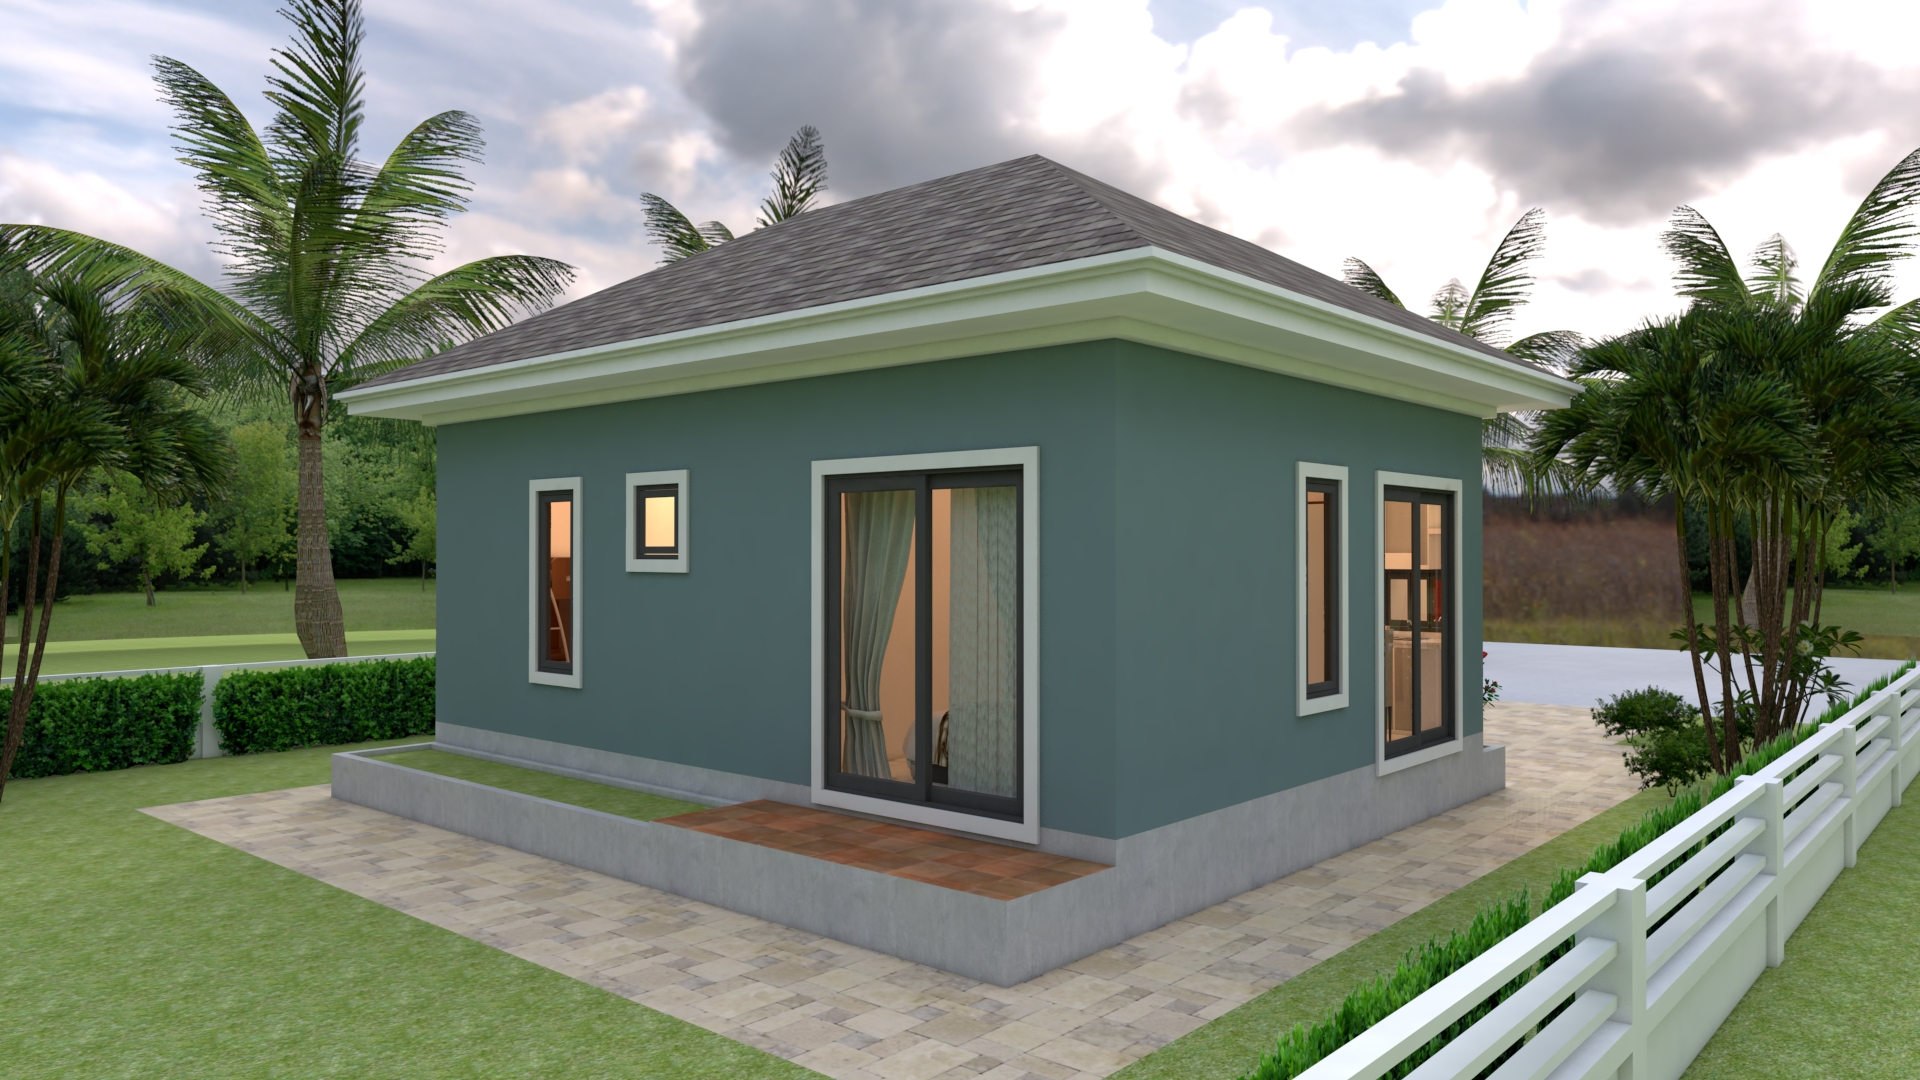 Simple Bungalow House Designs 8x6 Meter 26x20 Feet 2 Beds 3